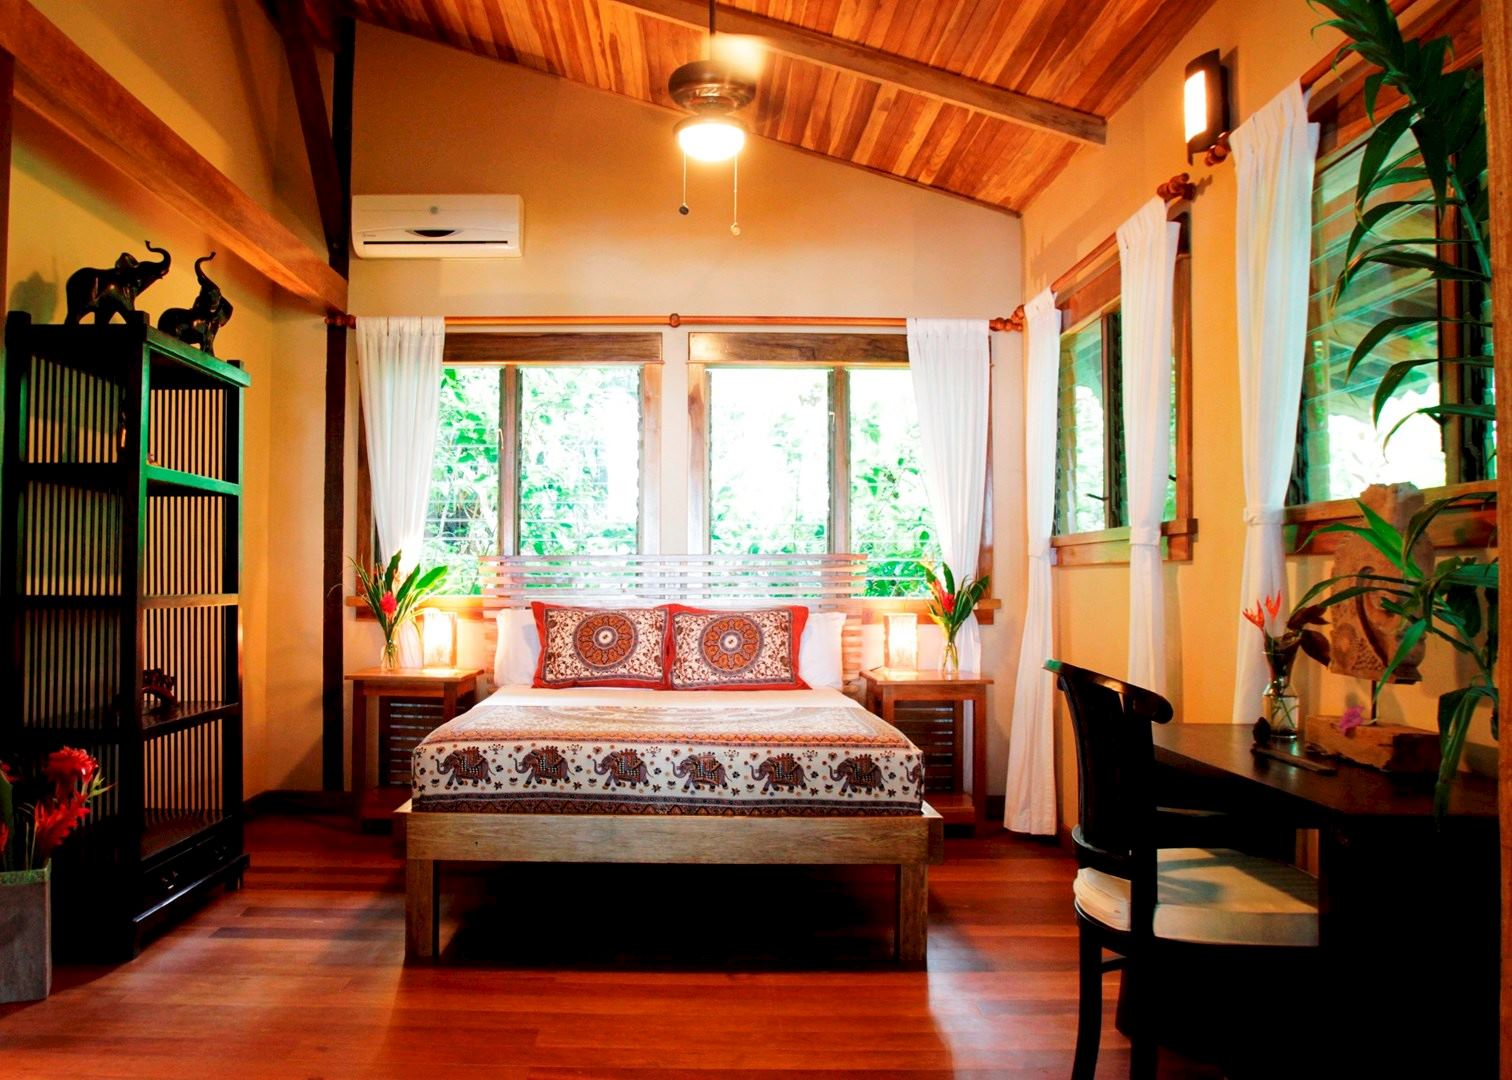 Copa De Arbol Beach And Rainforest Resort Audley Travel - Copa luxury beach house for a relaxing vacation